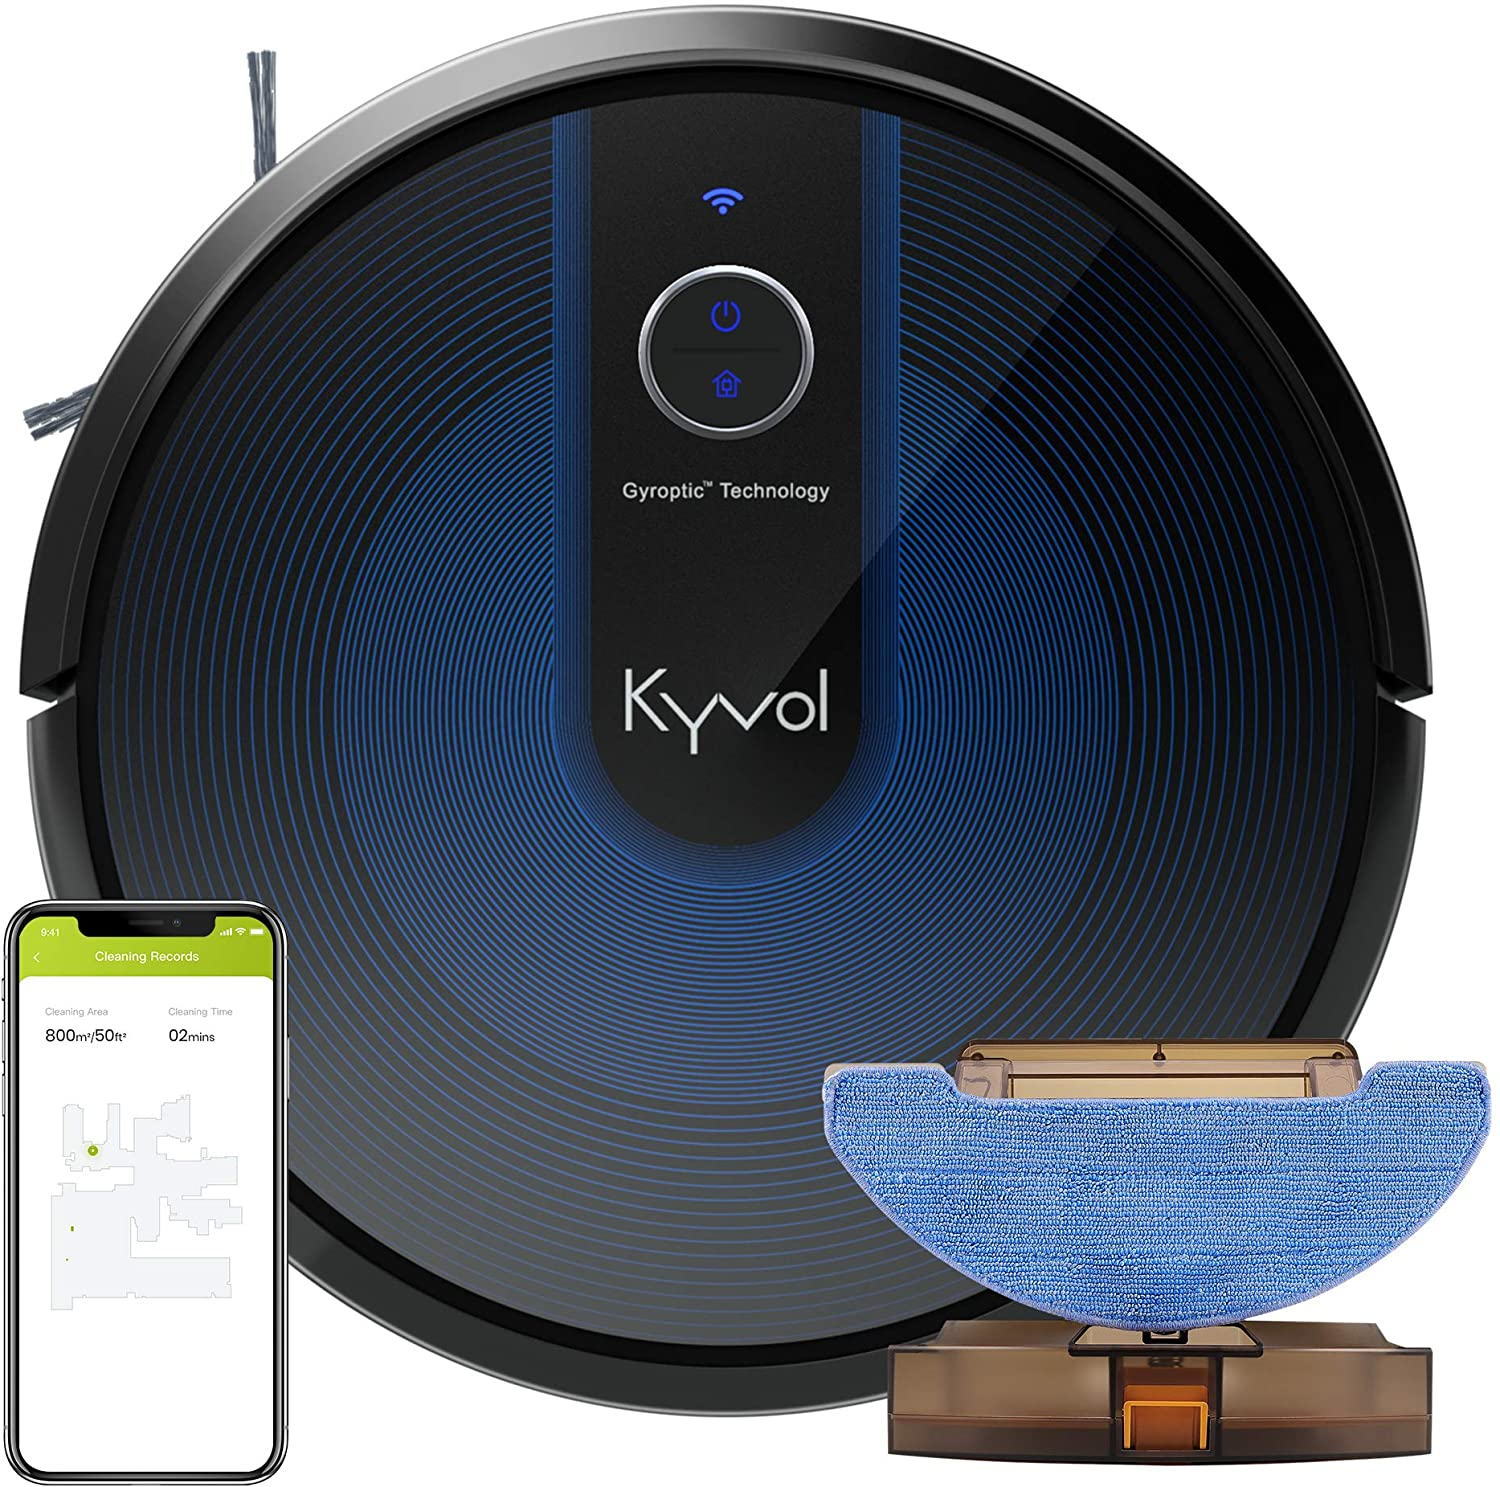 kyvol cybovac e31 vacuum sweeping and mopping robot cleaner